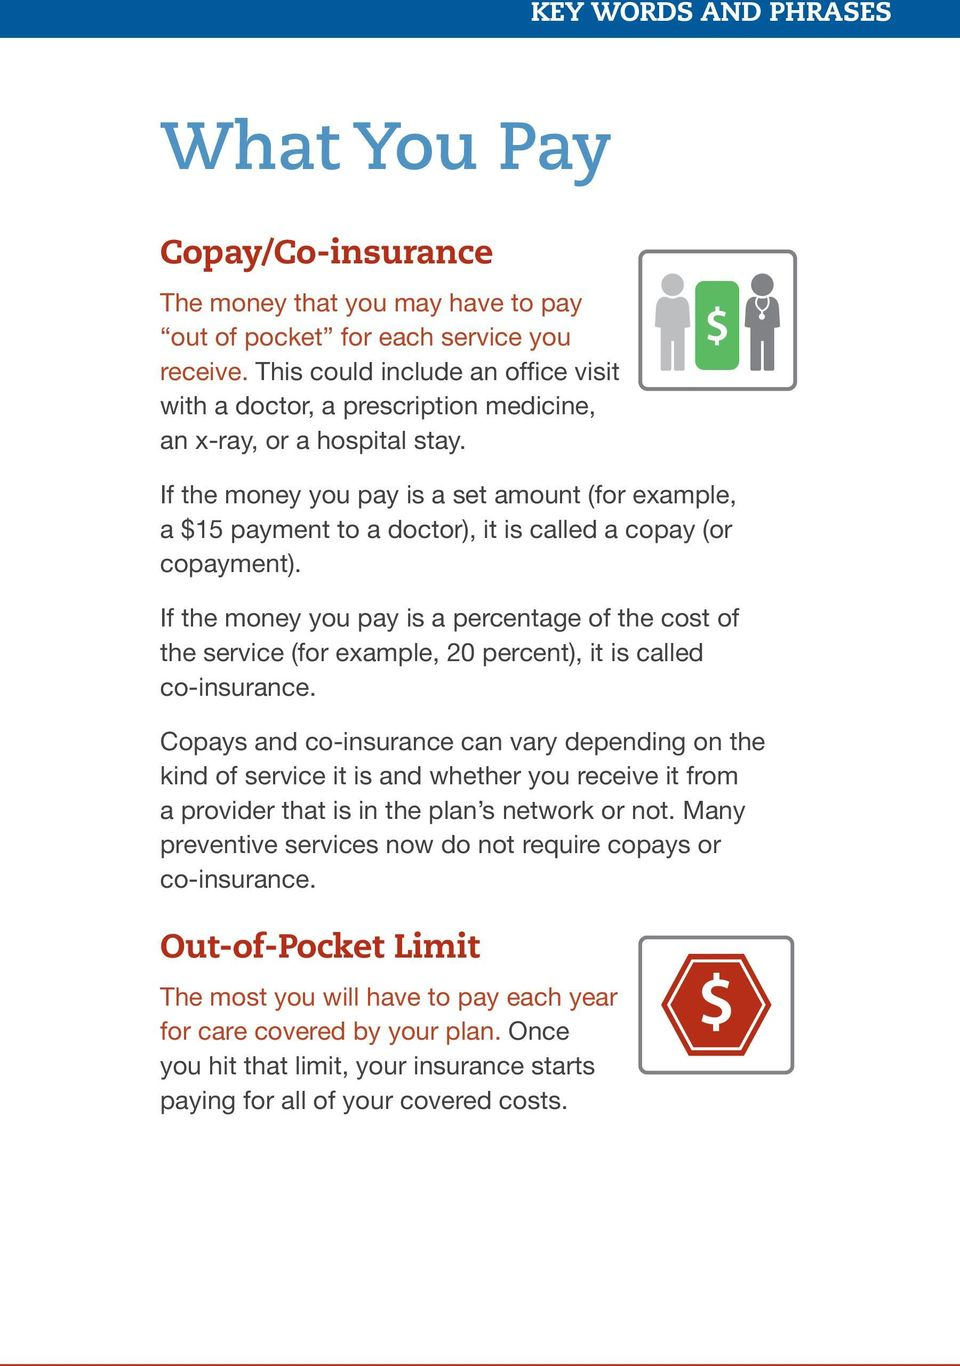 $ If the money you pay is a set amount (for example, a $15 payment to a doctor), it is called a copay (or copayment).